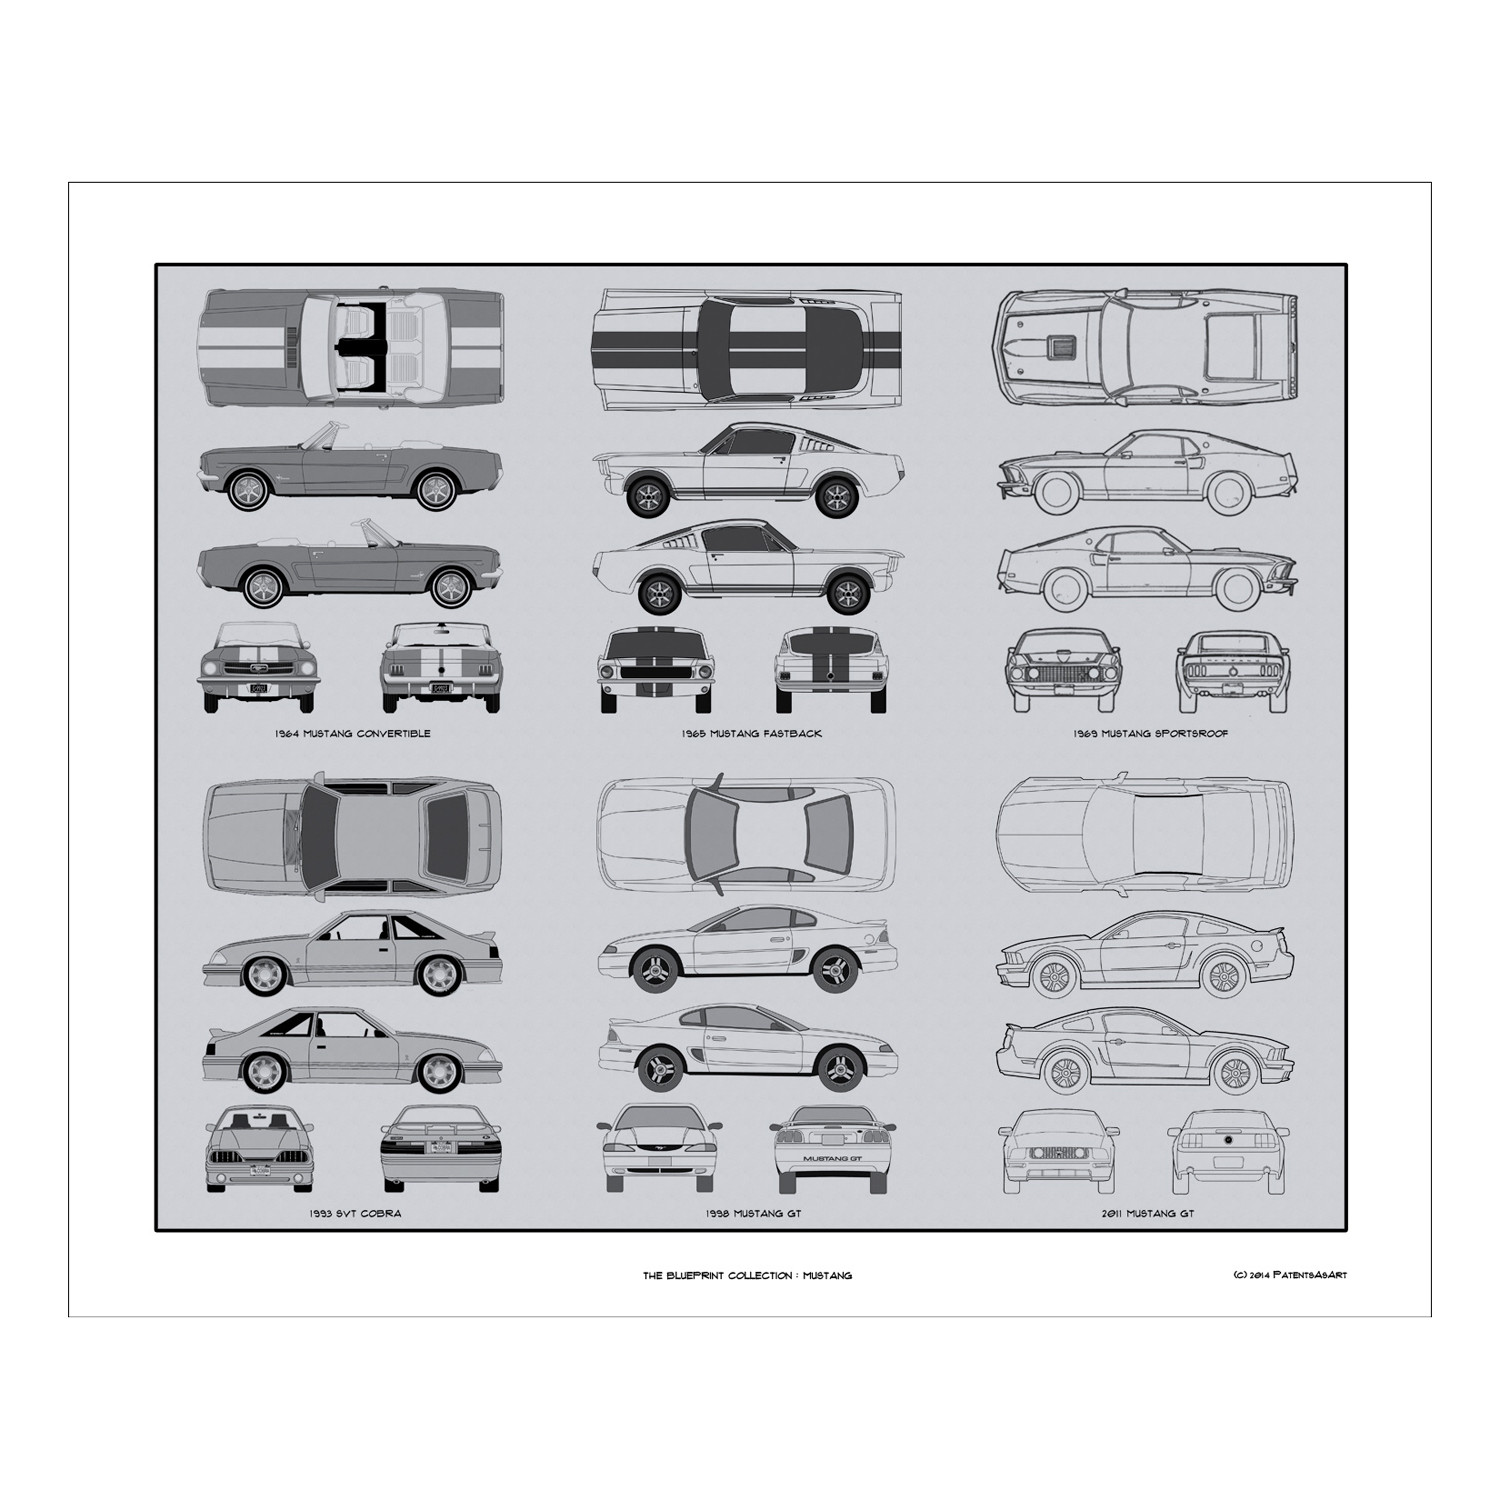 small resolution of de95503646879094c517bb0af2287b49 medium ford mustang blueprint collection